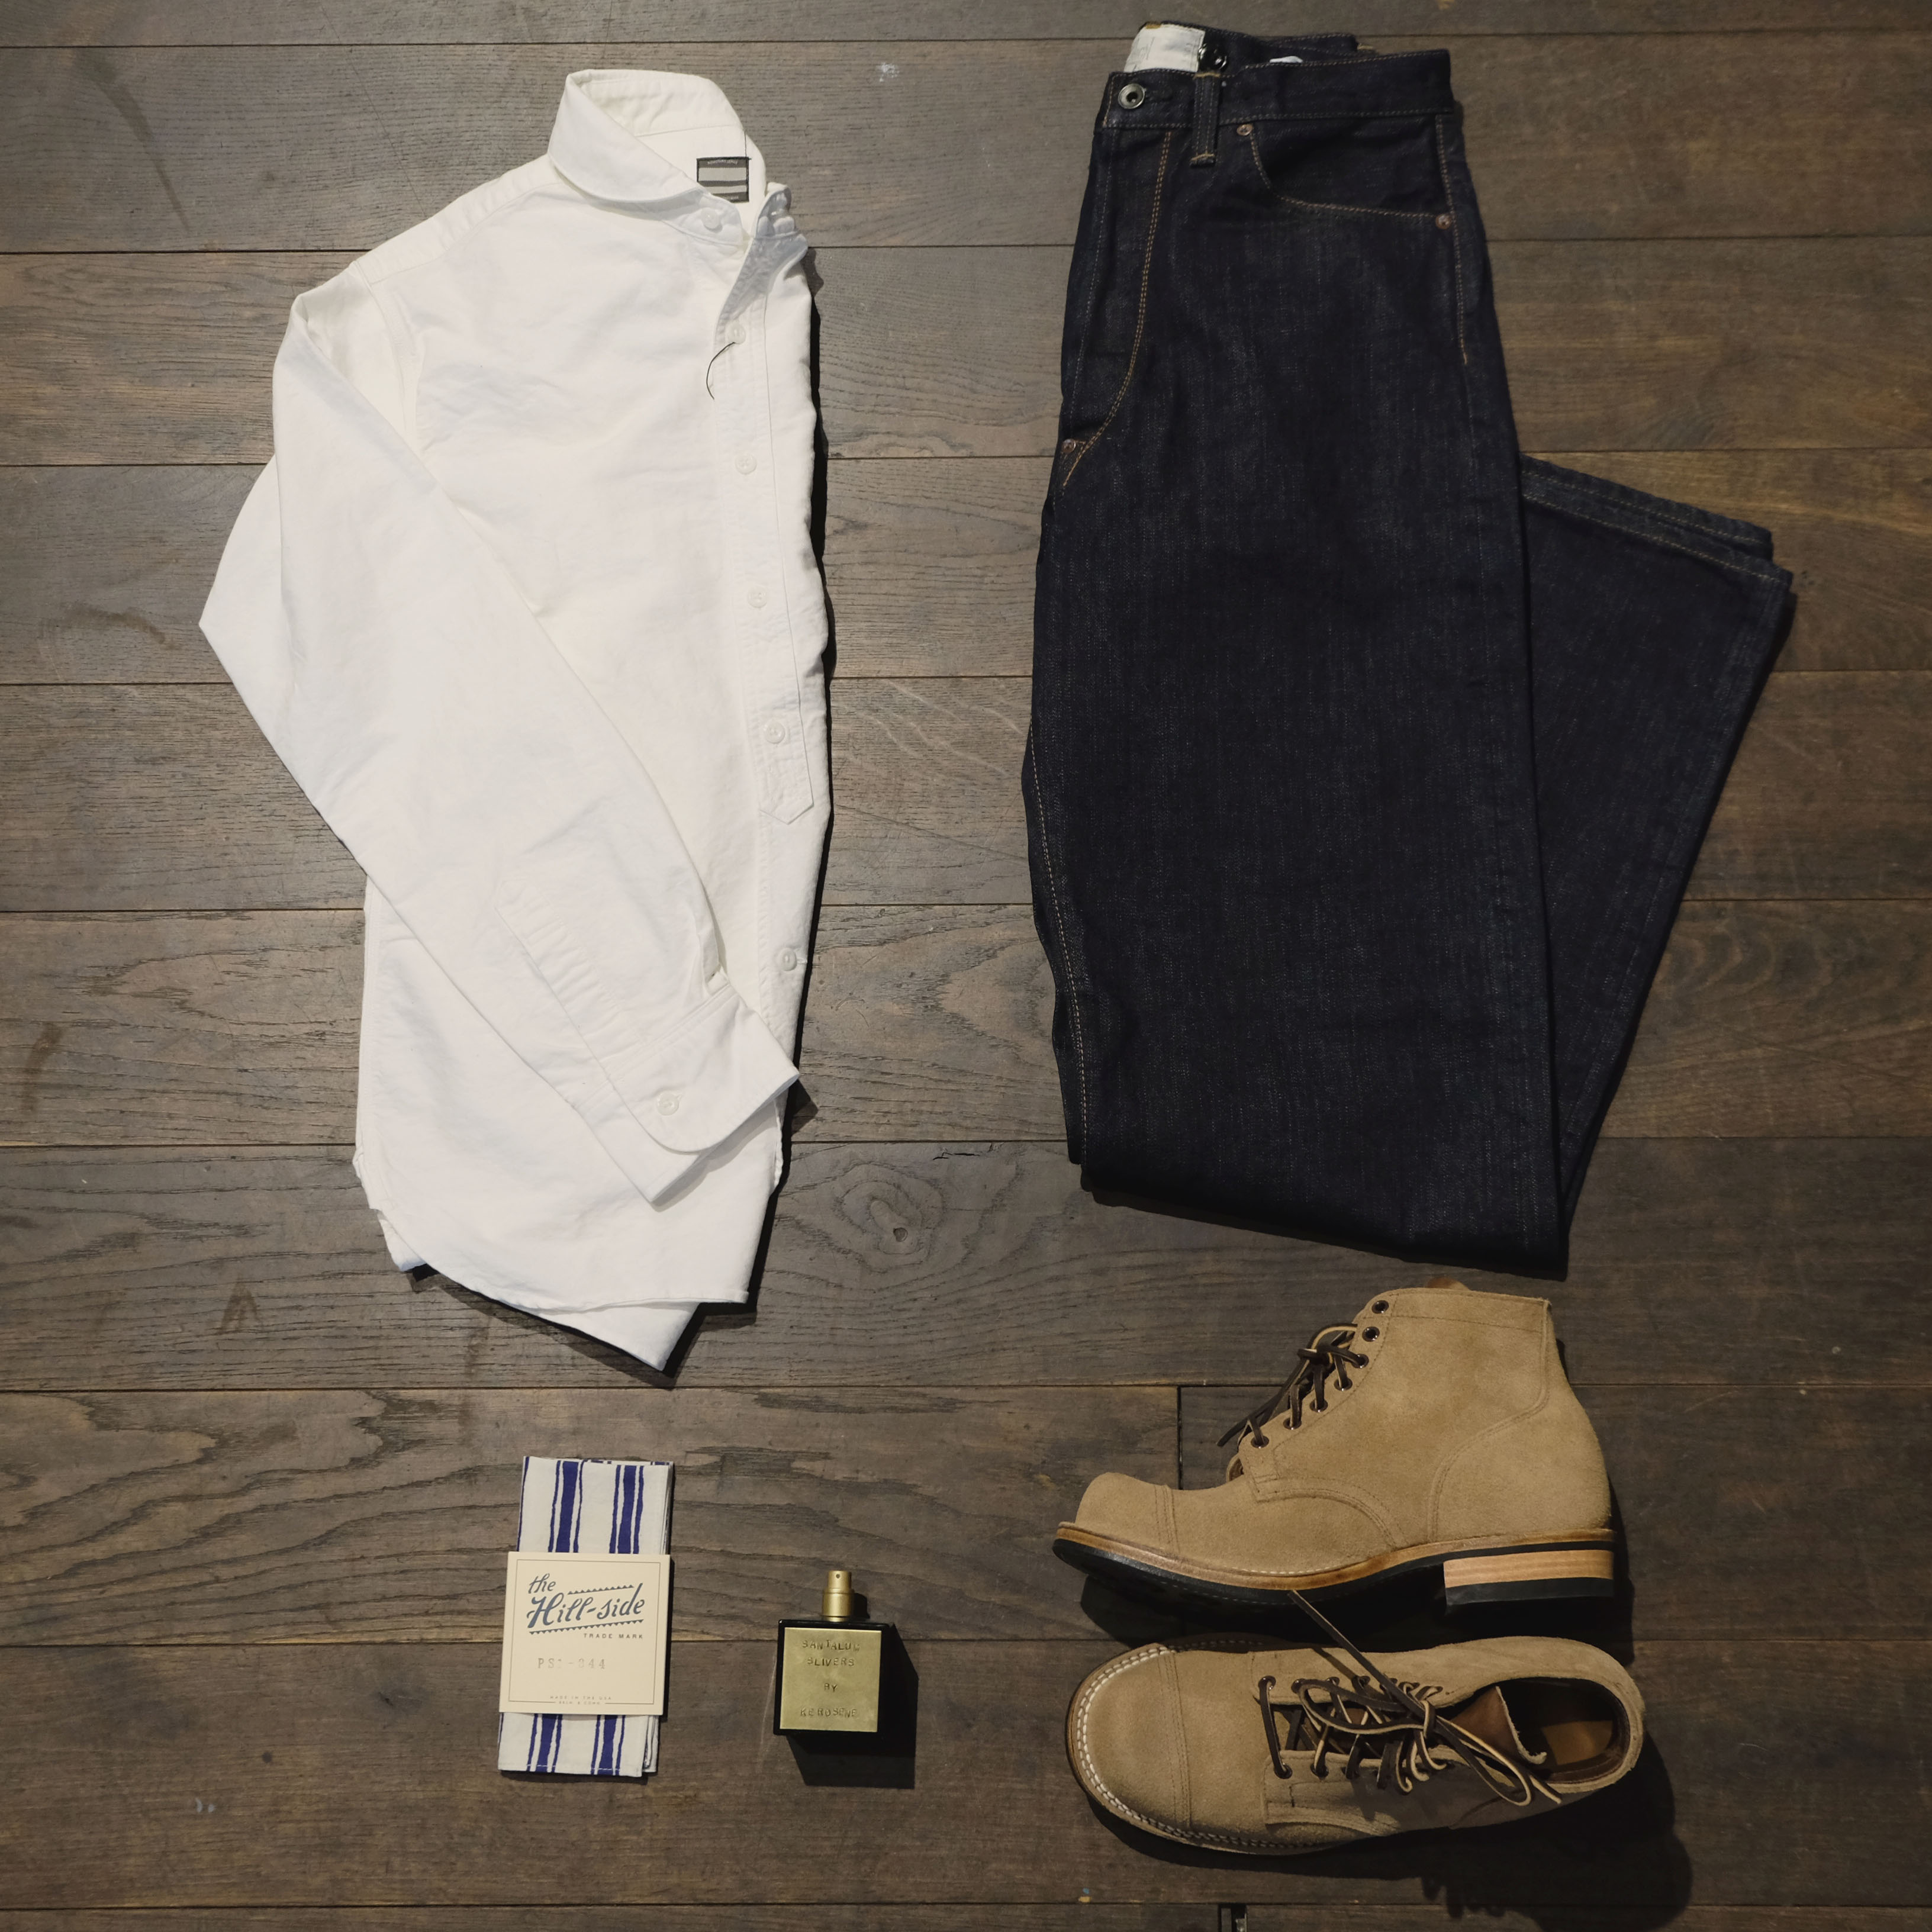 outfit-der-woche-weisses-hemd-jeans-viberg-black-sign